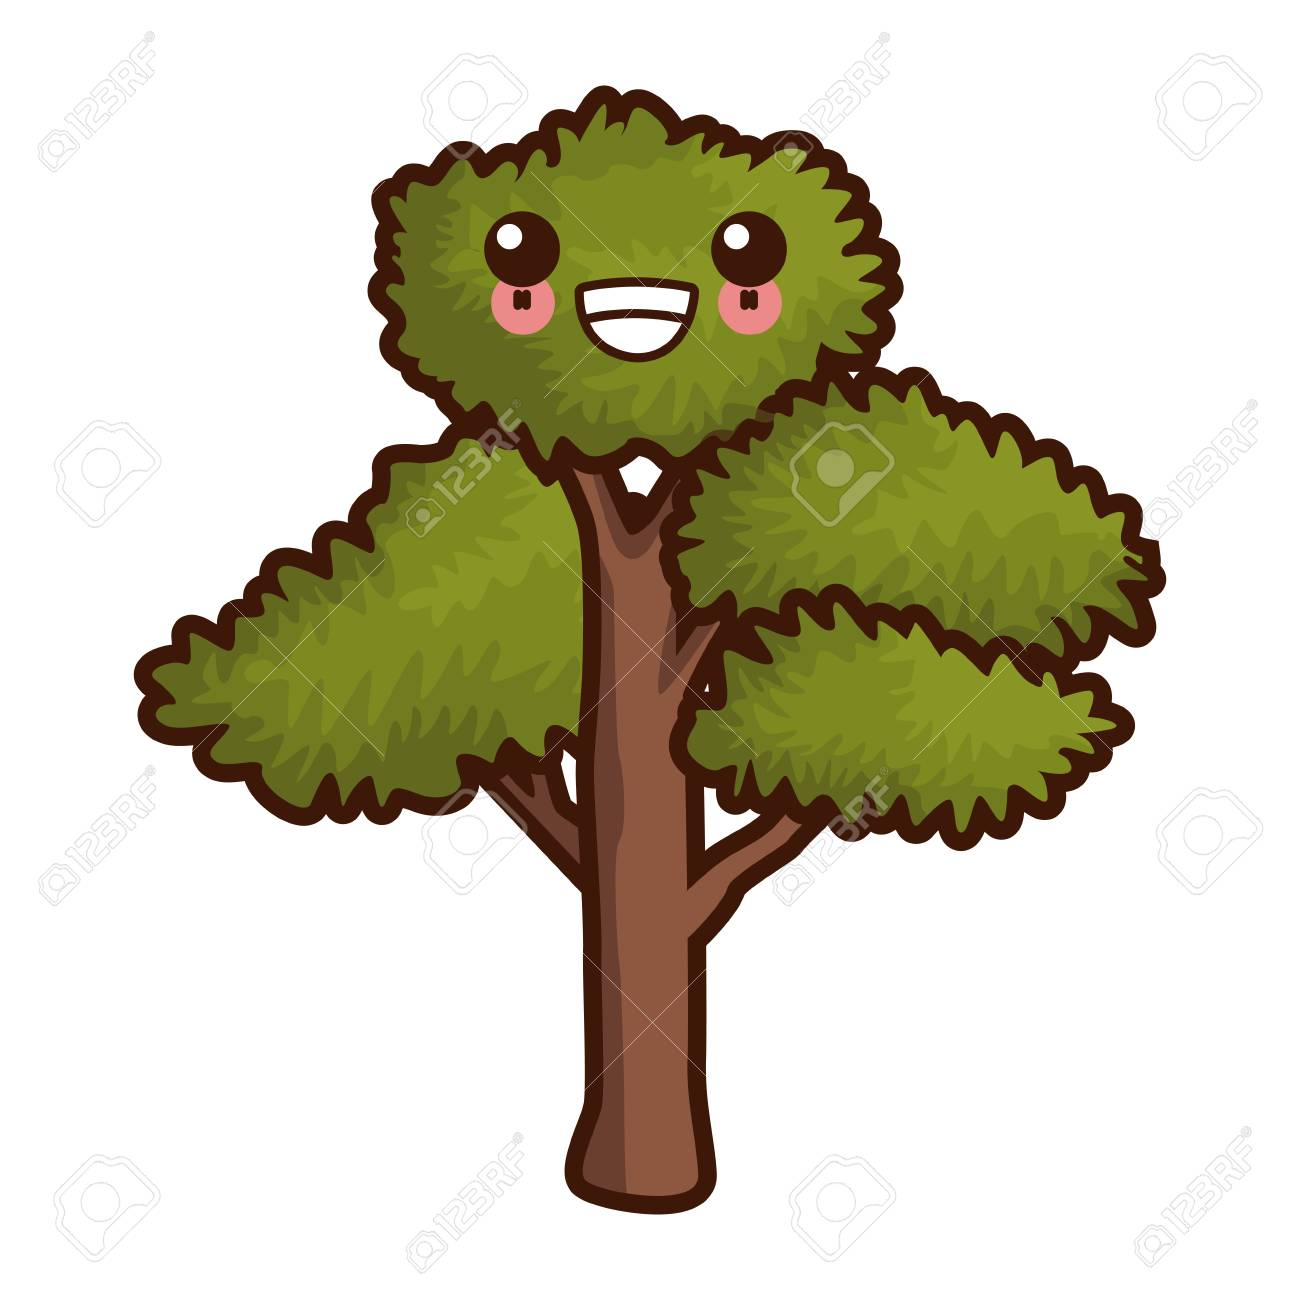 Tree Nature Symbol Cute Cartoon Vector Illustration Graphic Design Royalty Free Cliparts Vectors And Stock Illustration Image 88756312 3d cartoon plants models download , free cartoon plants 3d models and 3d objects for computer graphics applications like advertising, cg works, 3d visualization, interior design, animation and 3d. tree nature symbol cute cartoon vector illustration graphic design